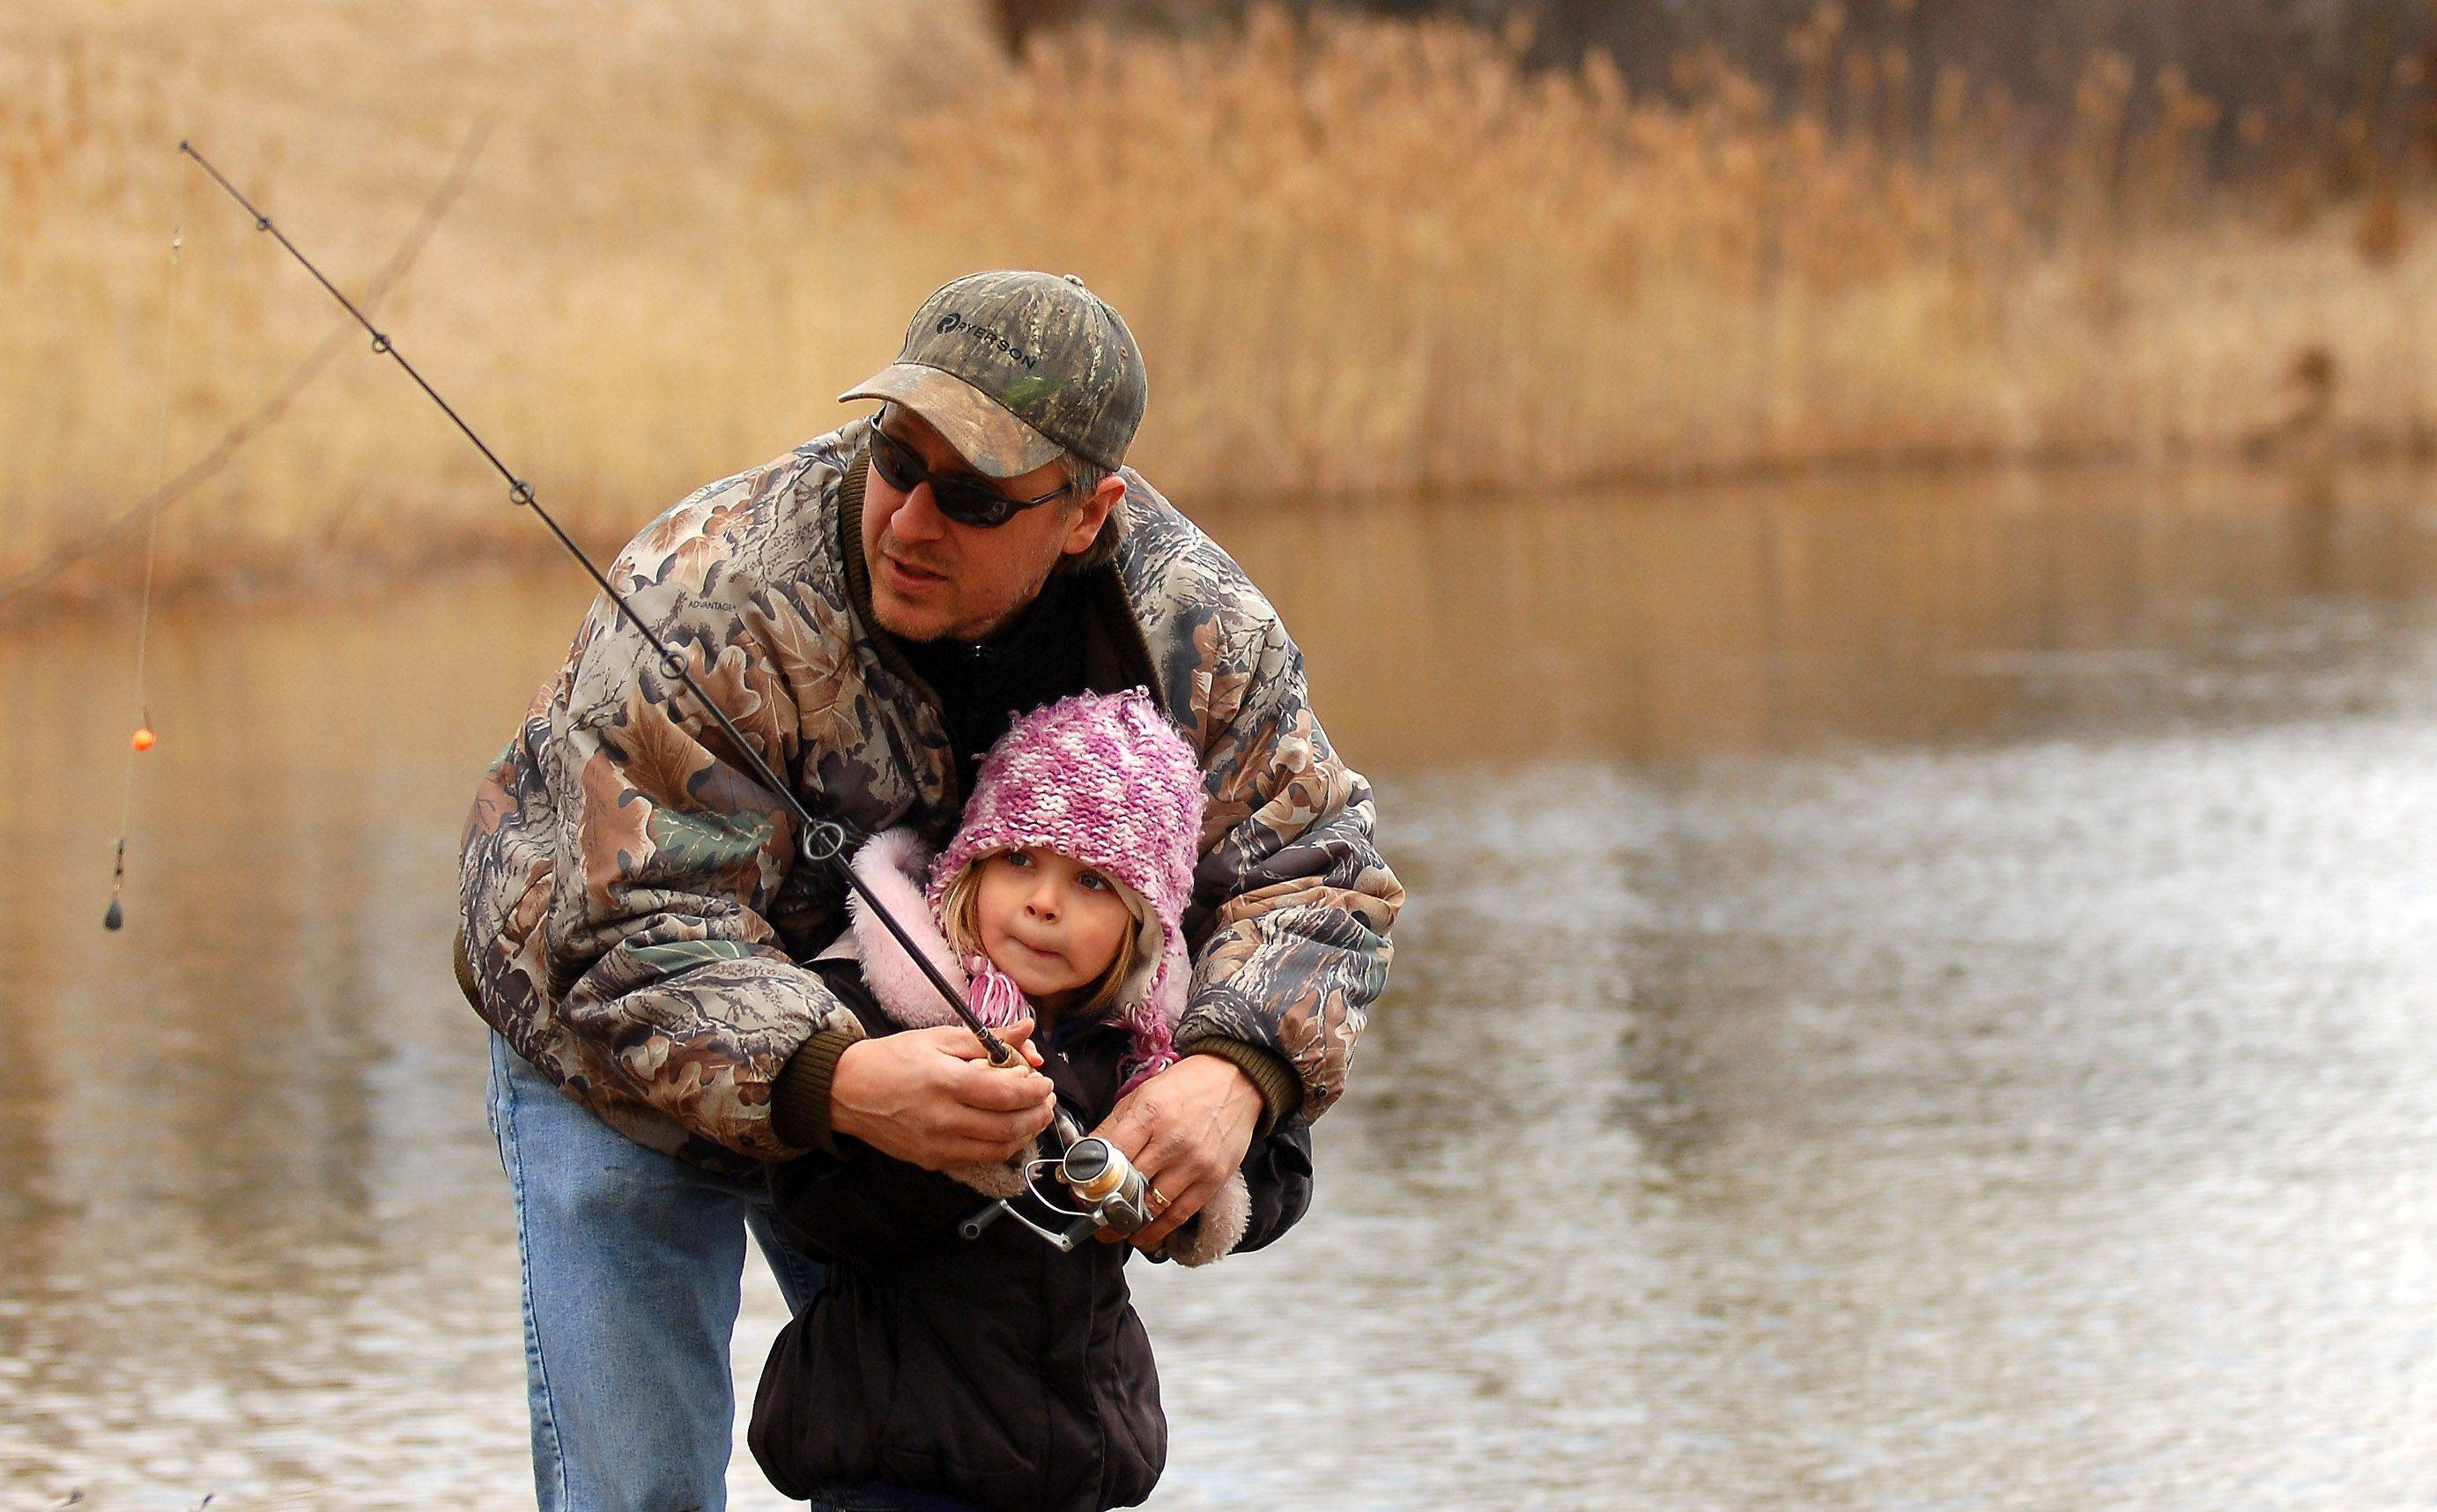 Scott Brown of Island Lake helps his daughter, Haley, 5, cast during the opening of trout fishing season Saturday at Lake Atwood, in the Hollows Conservation Area in Cary. The McHenry County Conservation District stocked more than 2,000 rainbow trout in the lake. Haley's brother Nathan, 7, also was in on the fishing action.